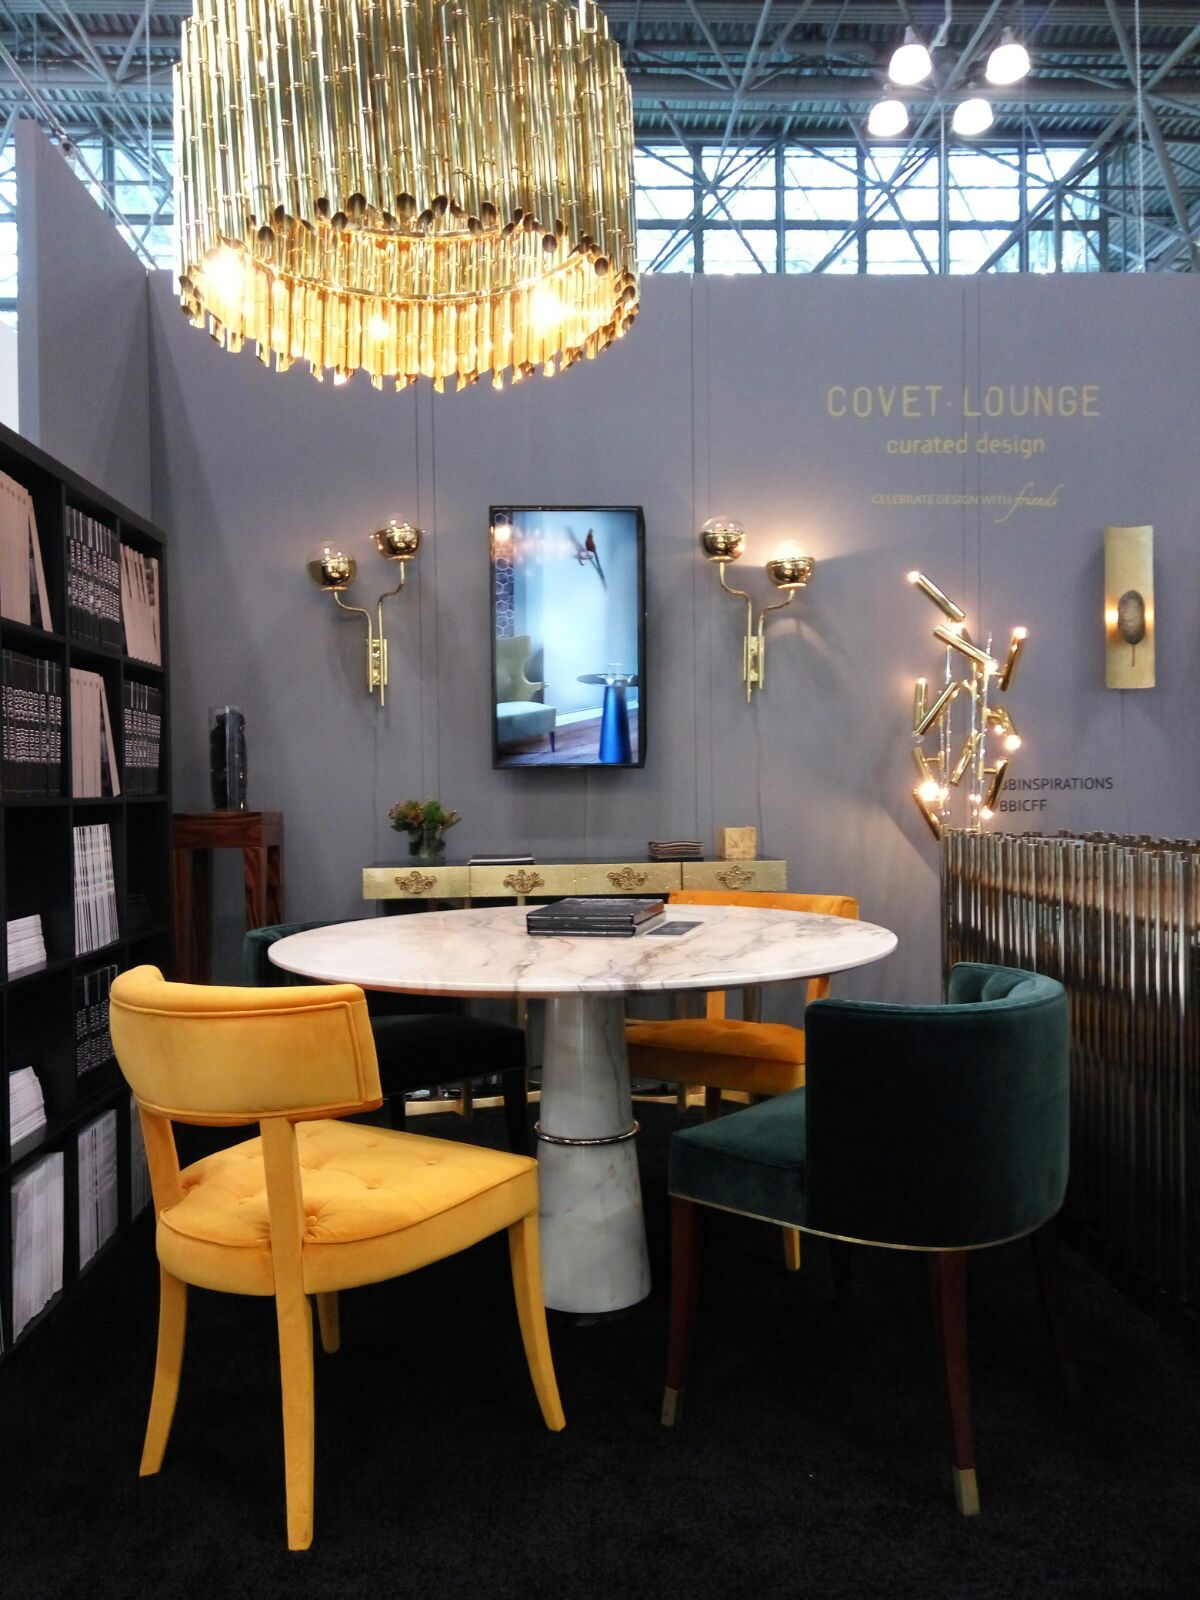 Charming Contemporary Furniture Design By Top Interior Design Brands: Covet House At  The Covet Lounge,